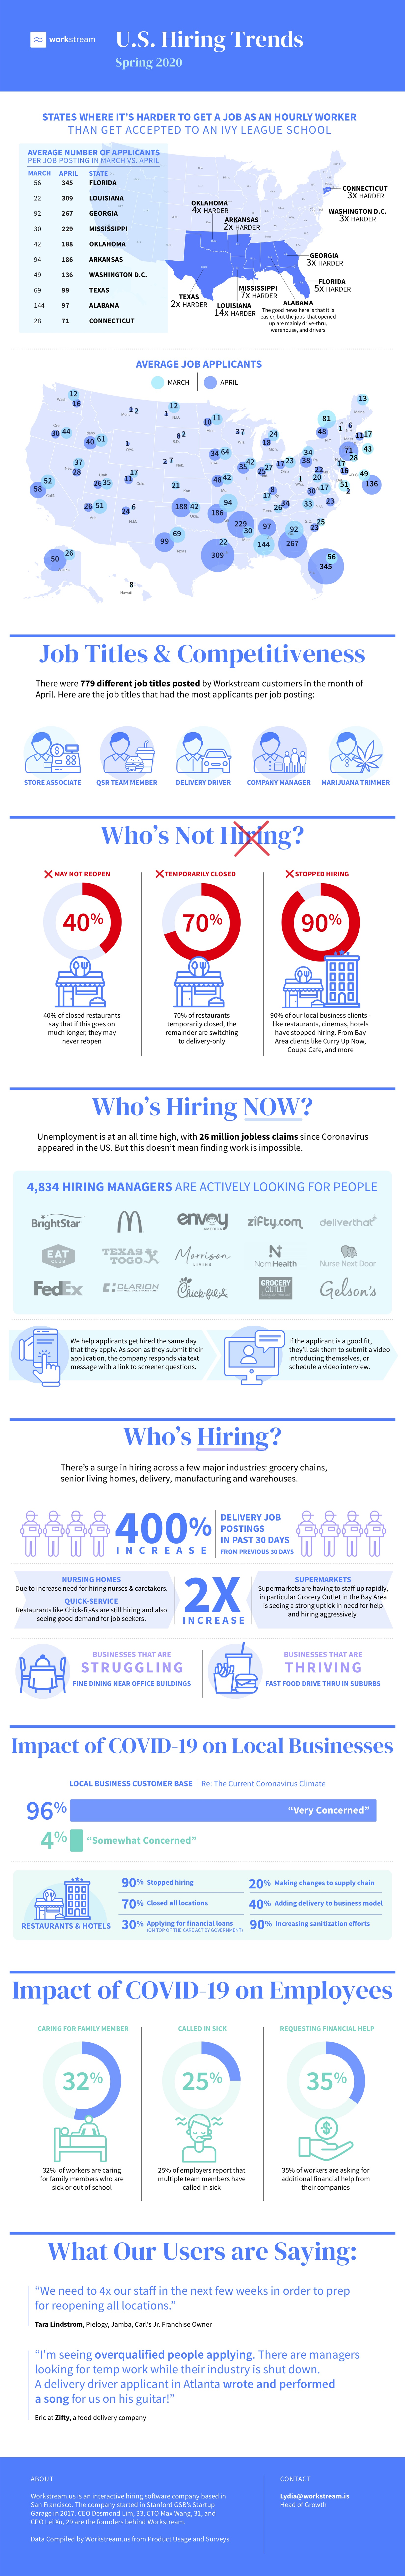 Complete Hiring Trends in Spring 2020 by State and Industry as well as companies that are actively looking for people